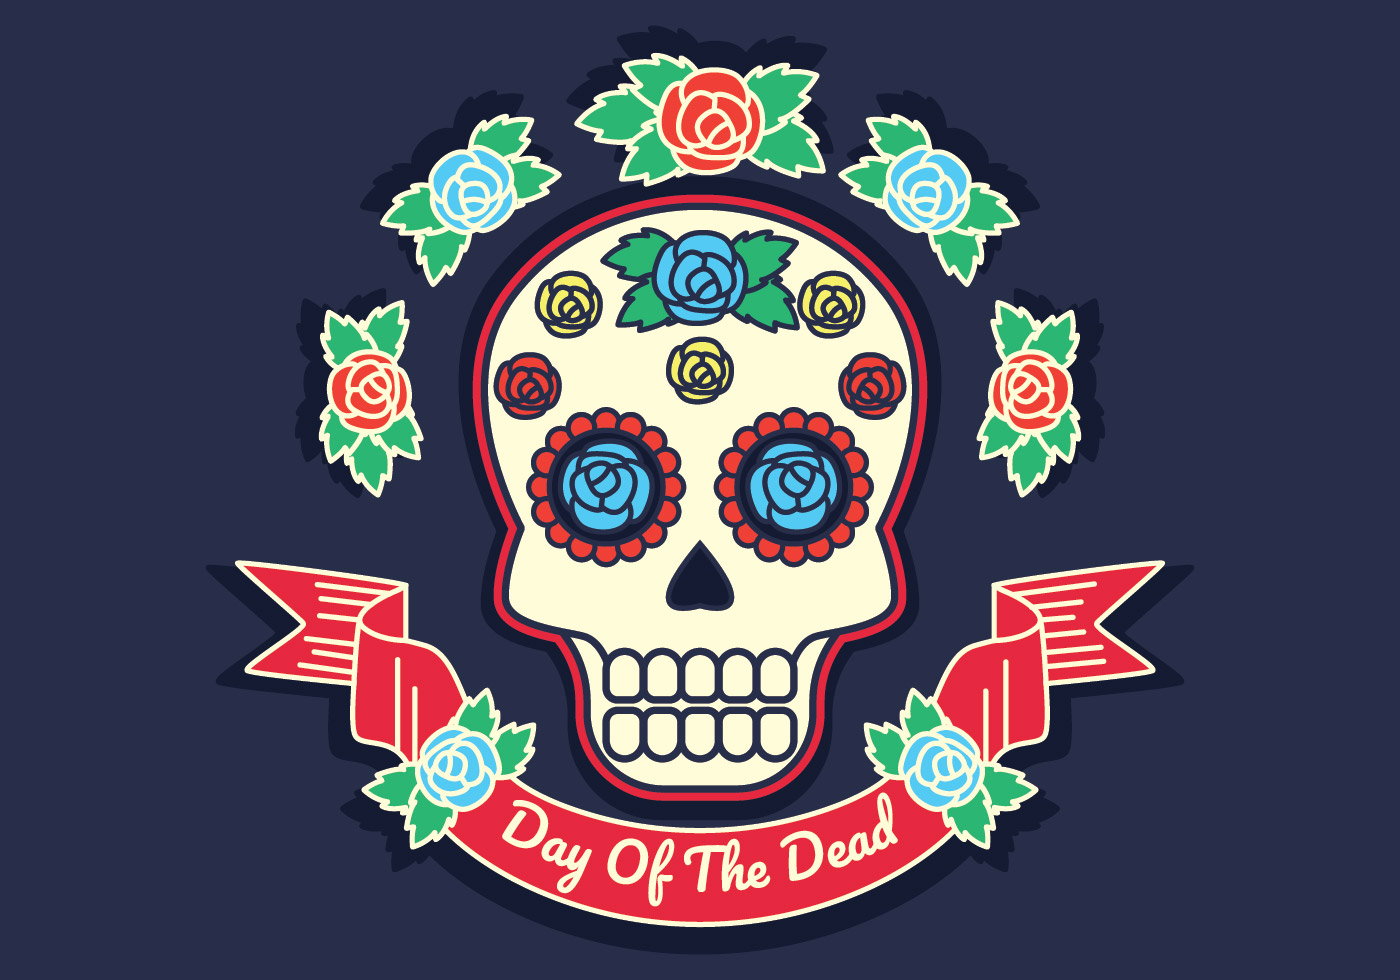 hight resolution of day of the dead vector illustration download free vector art stock graphics images